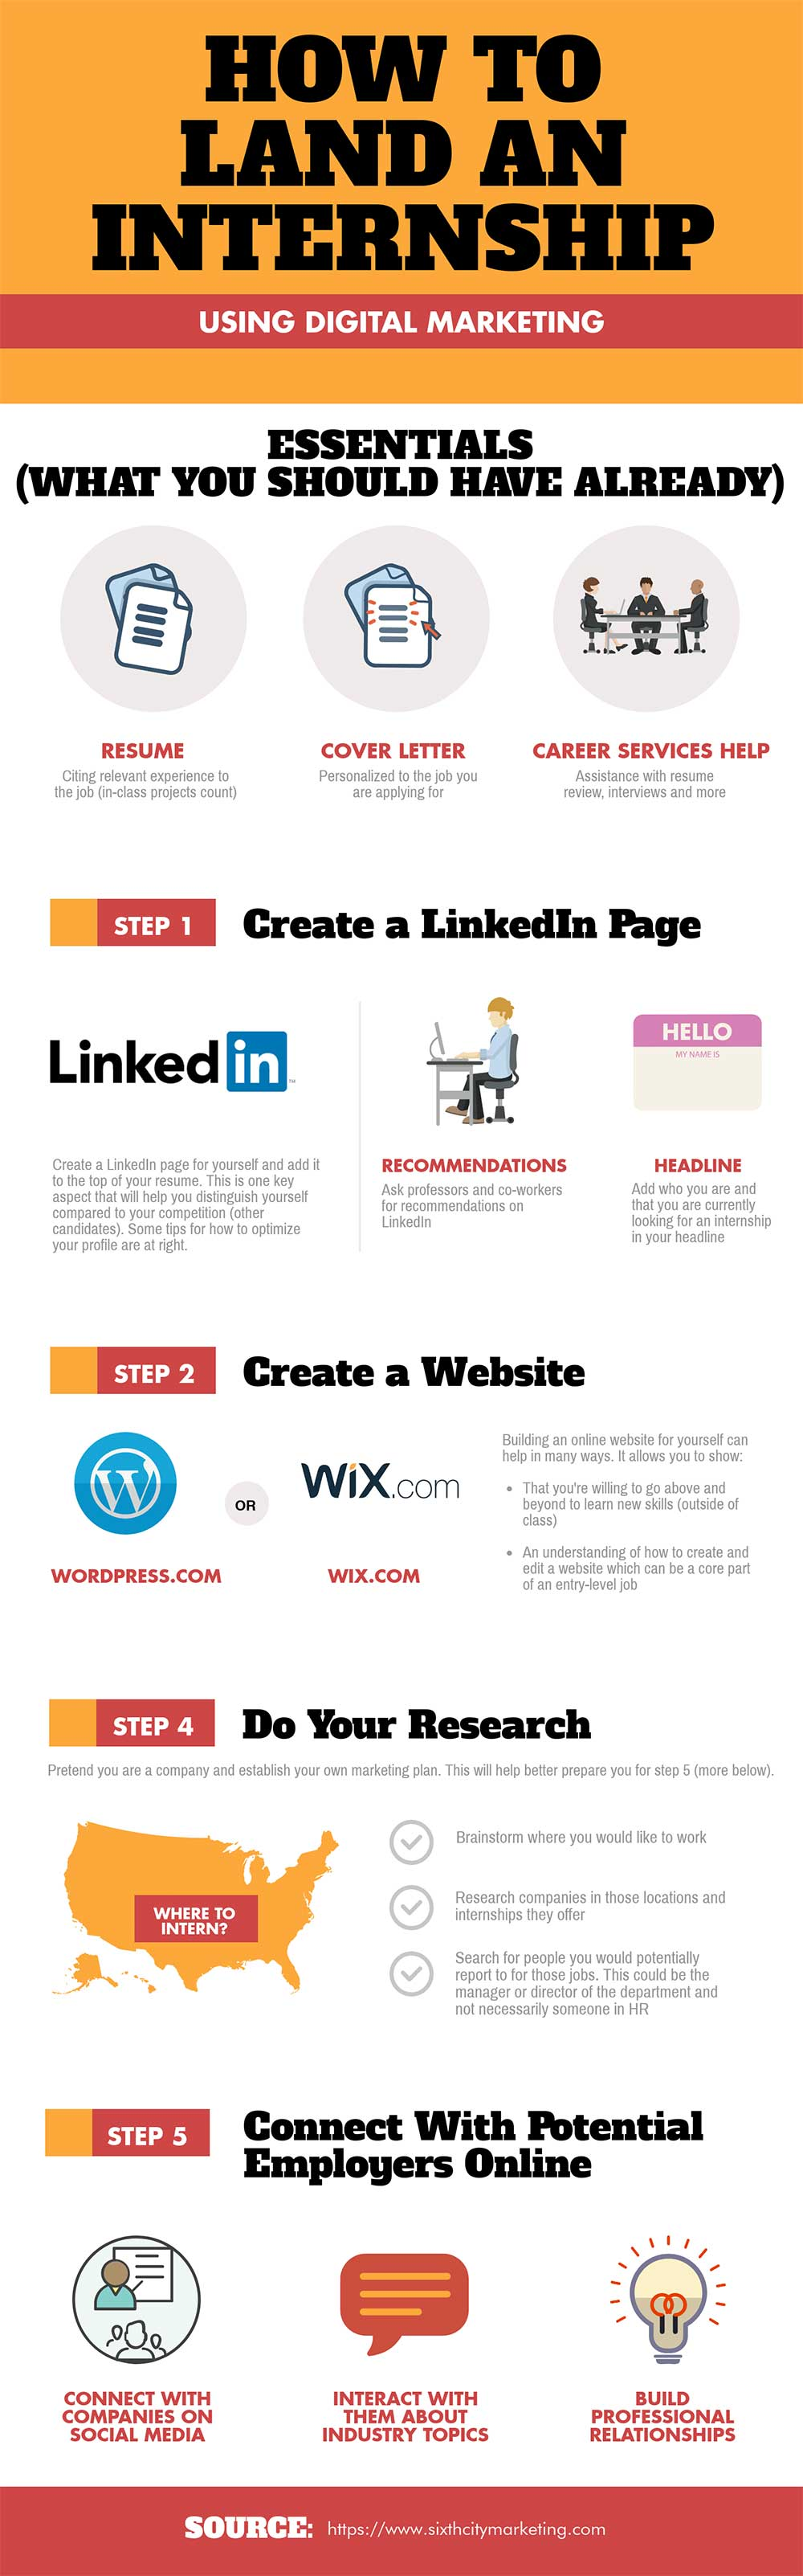 How To Land an Internship infographic